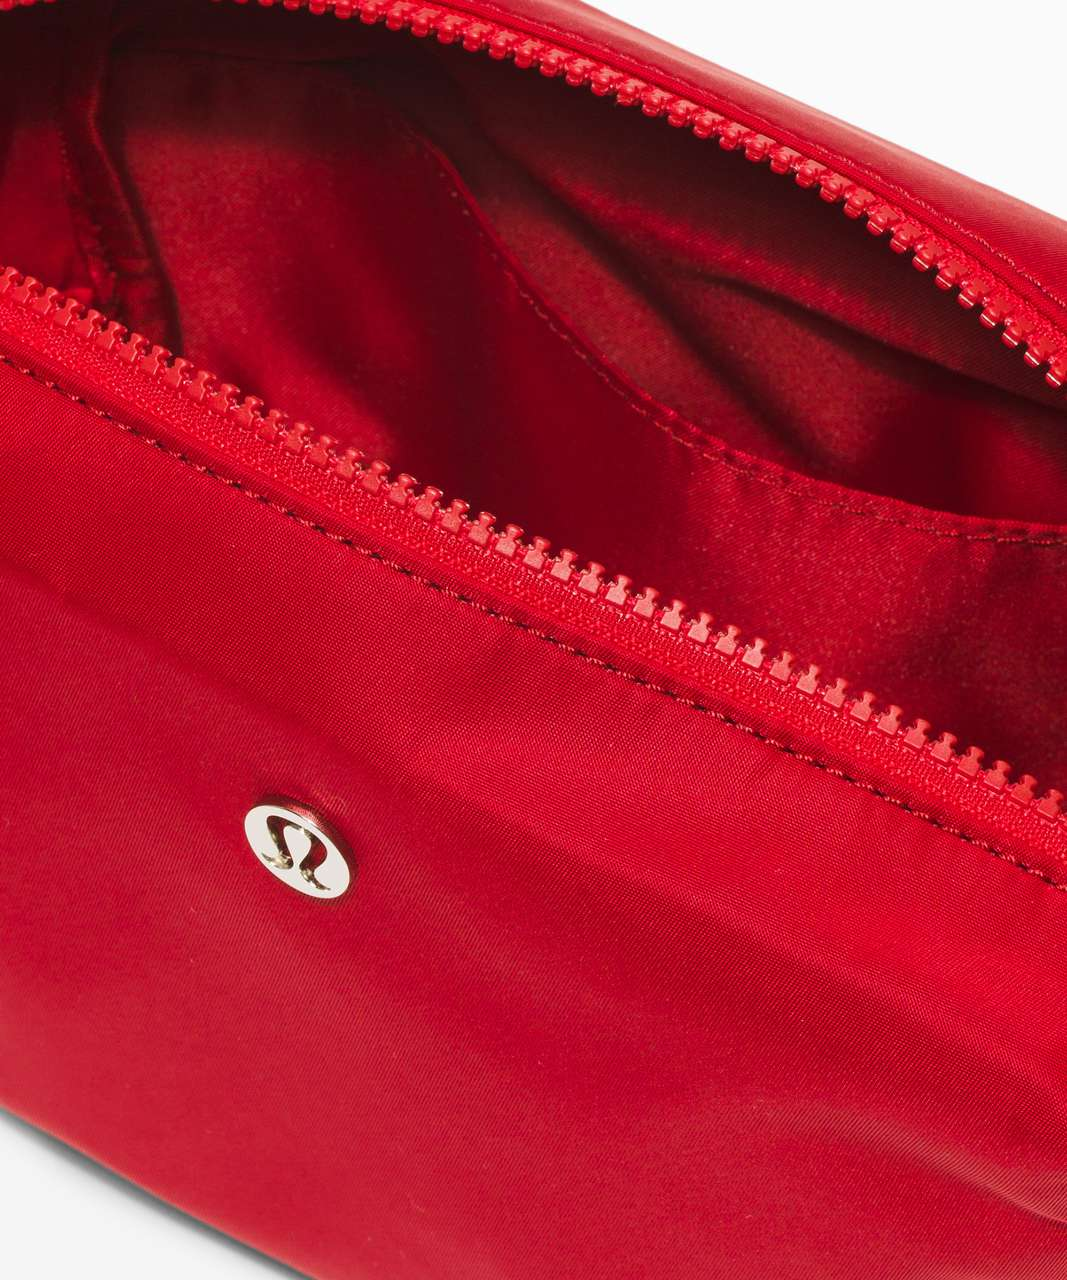 Lululemon All Your Small Things Pouch *4L - Dark Red